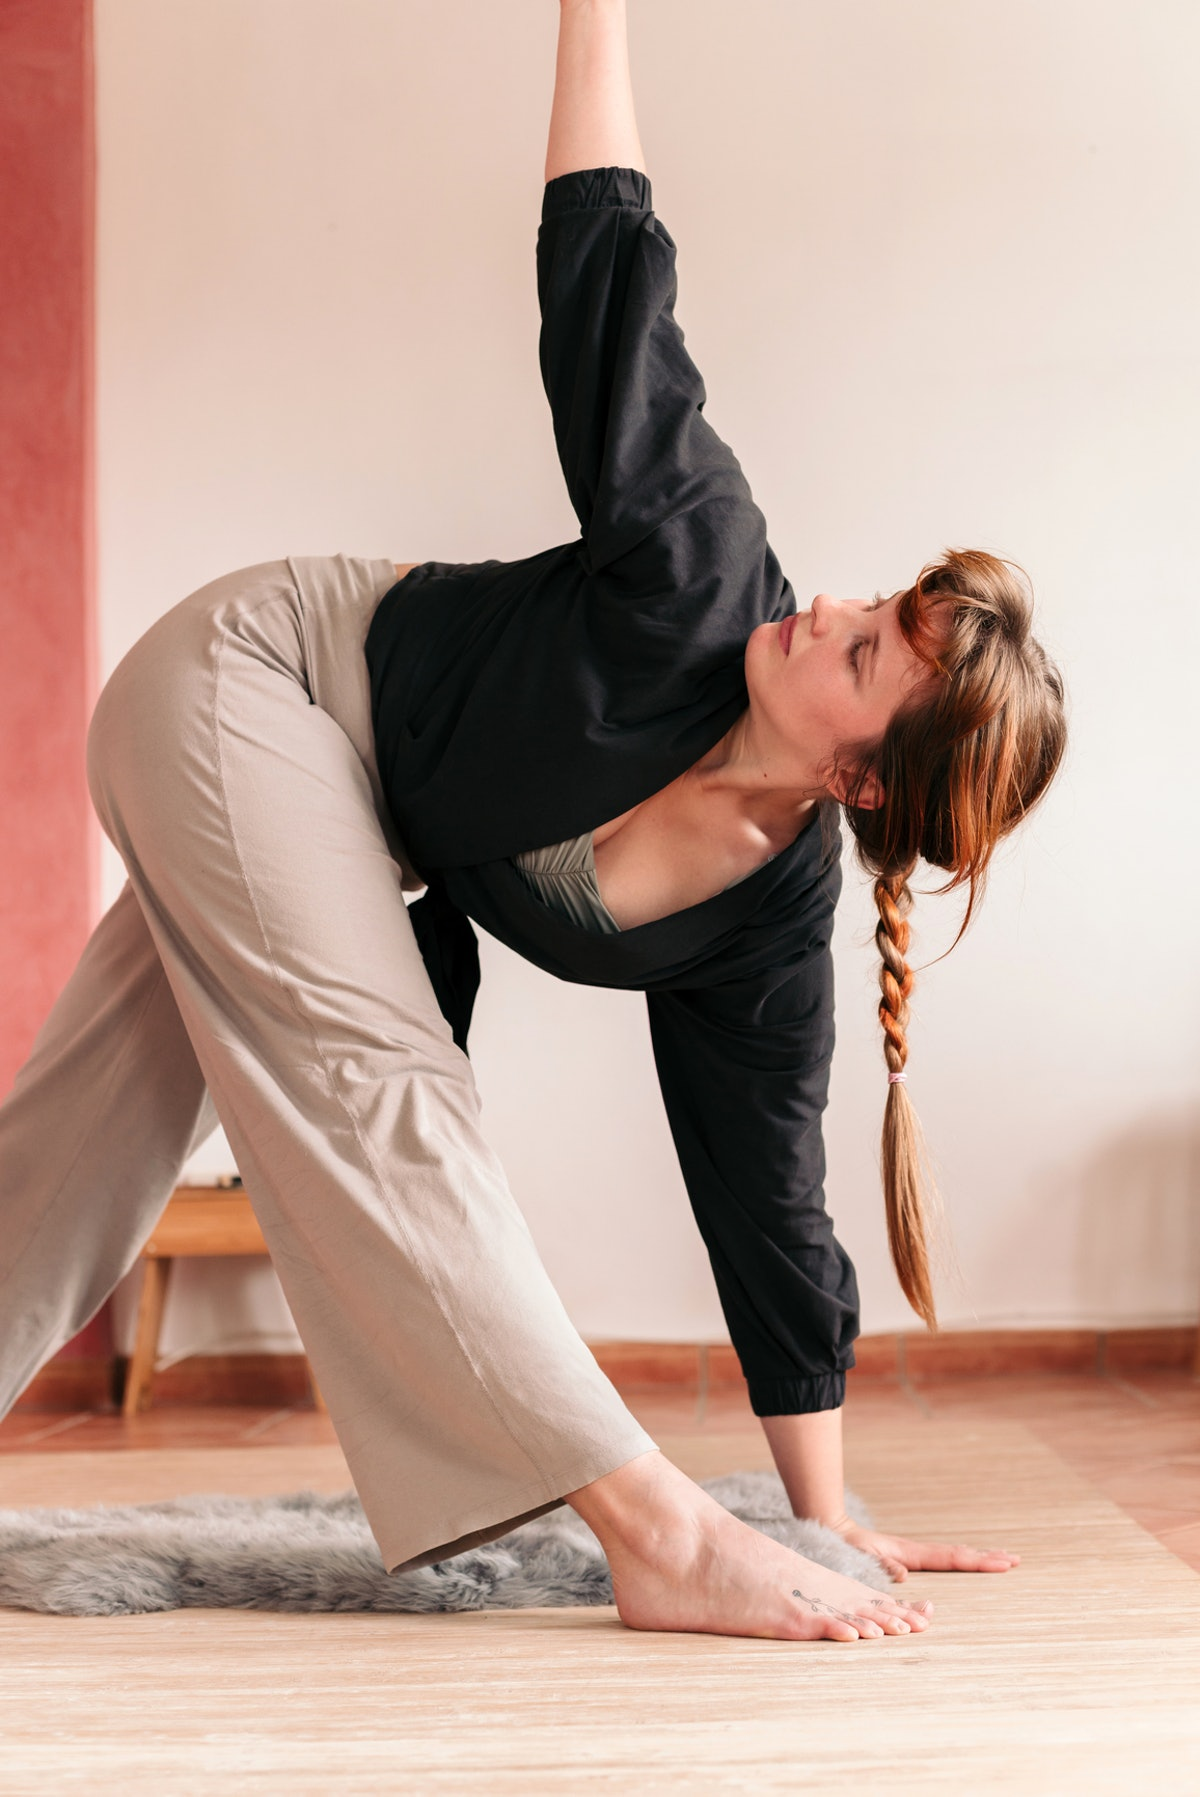 Young woman doing an easy yoga move in her dorm room.